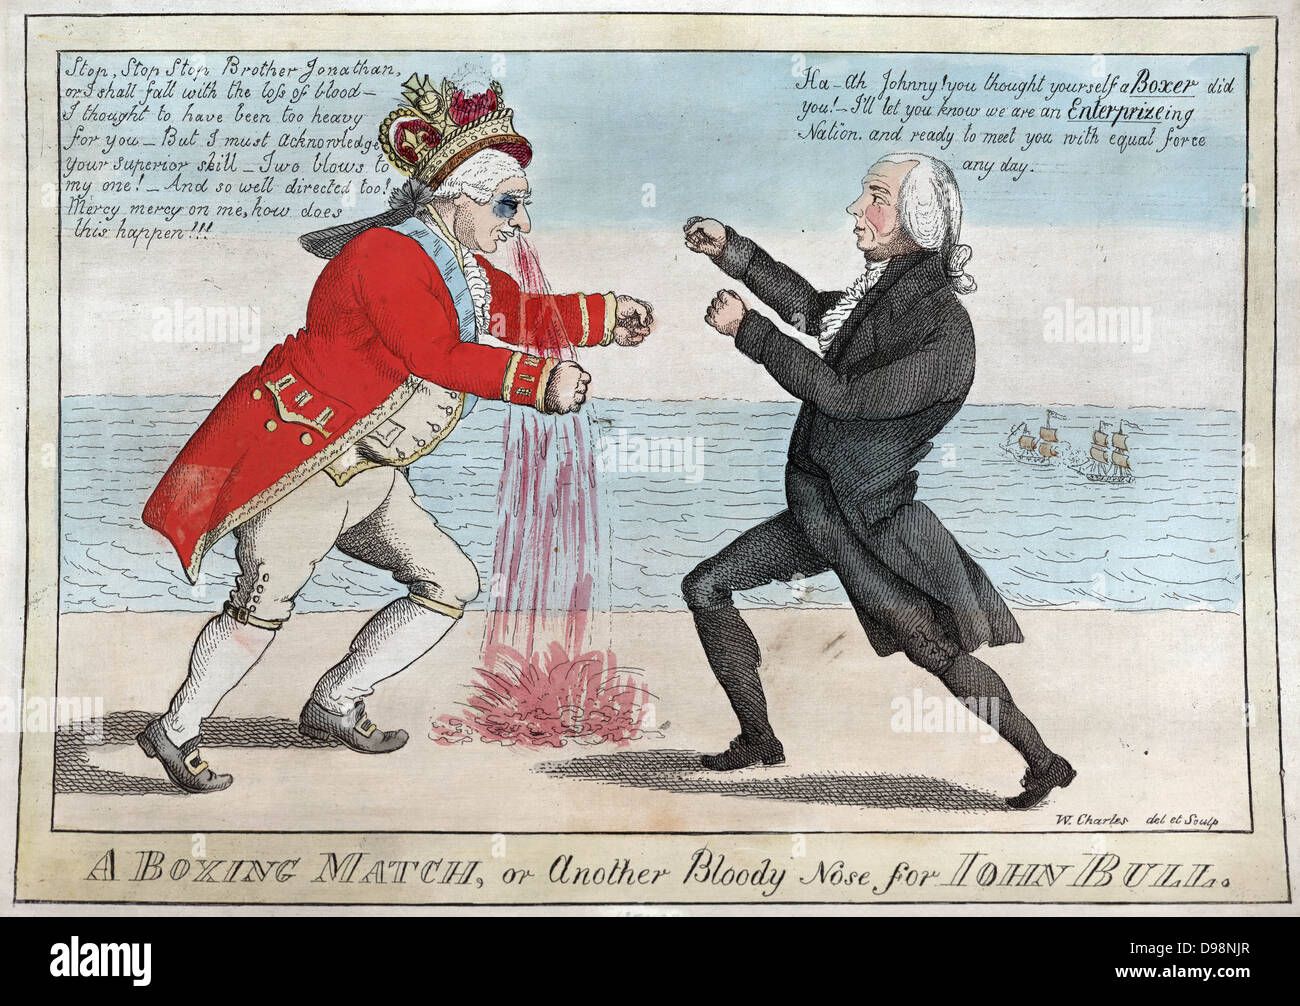 War of 1812 (Anglo-American War 1812-1815): 'The Boxing Match, or Another  Bloody Nose for John Bull'. George III wounded by